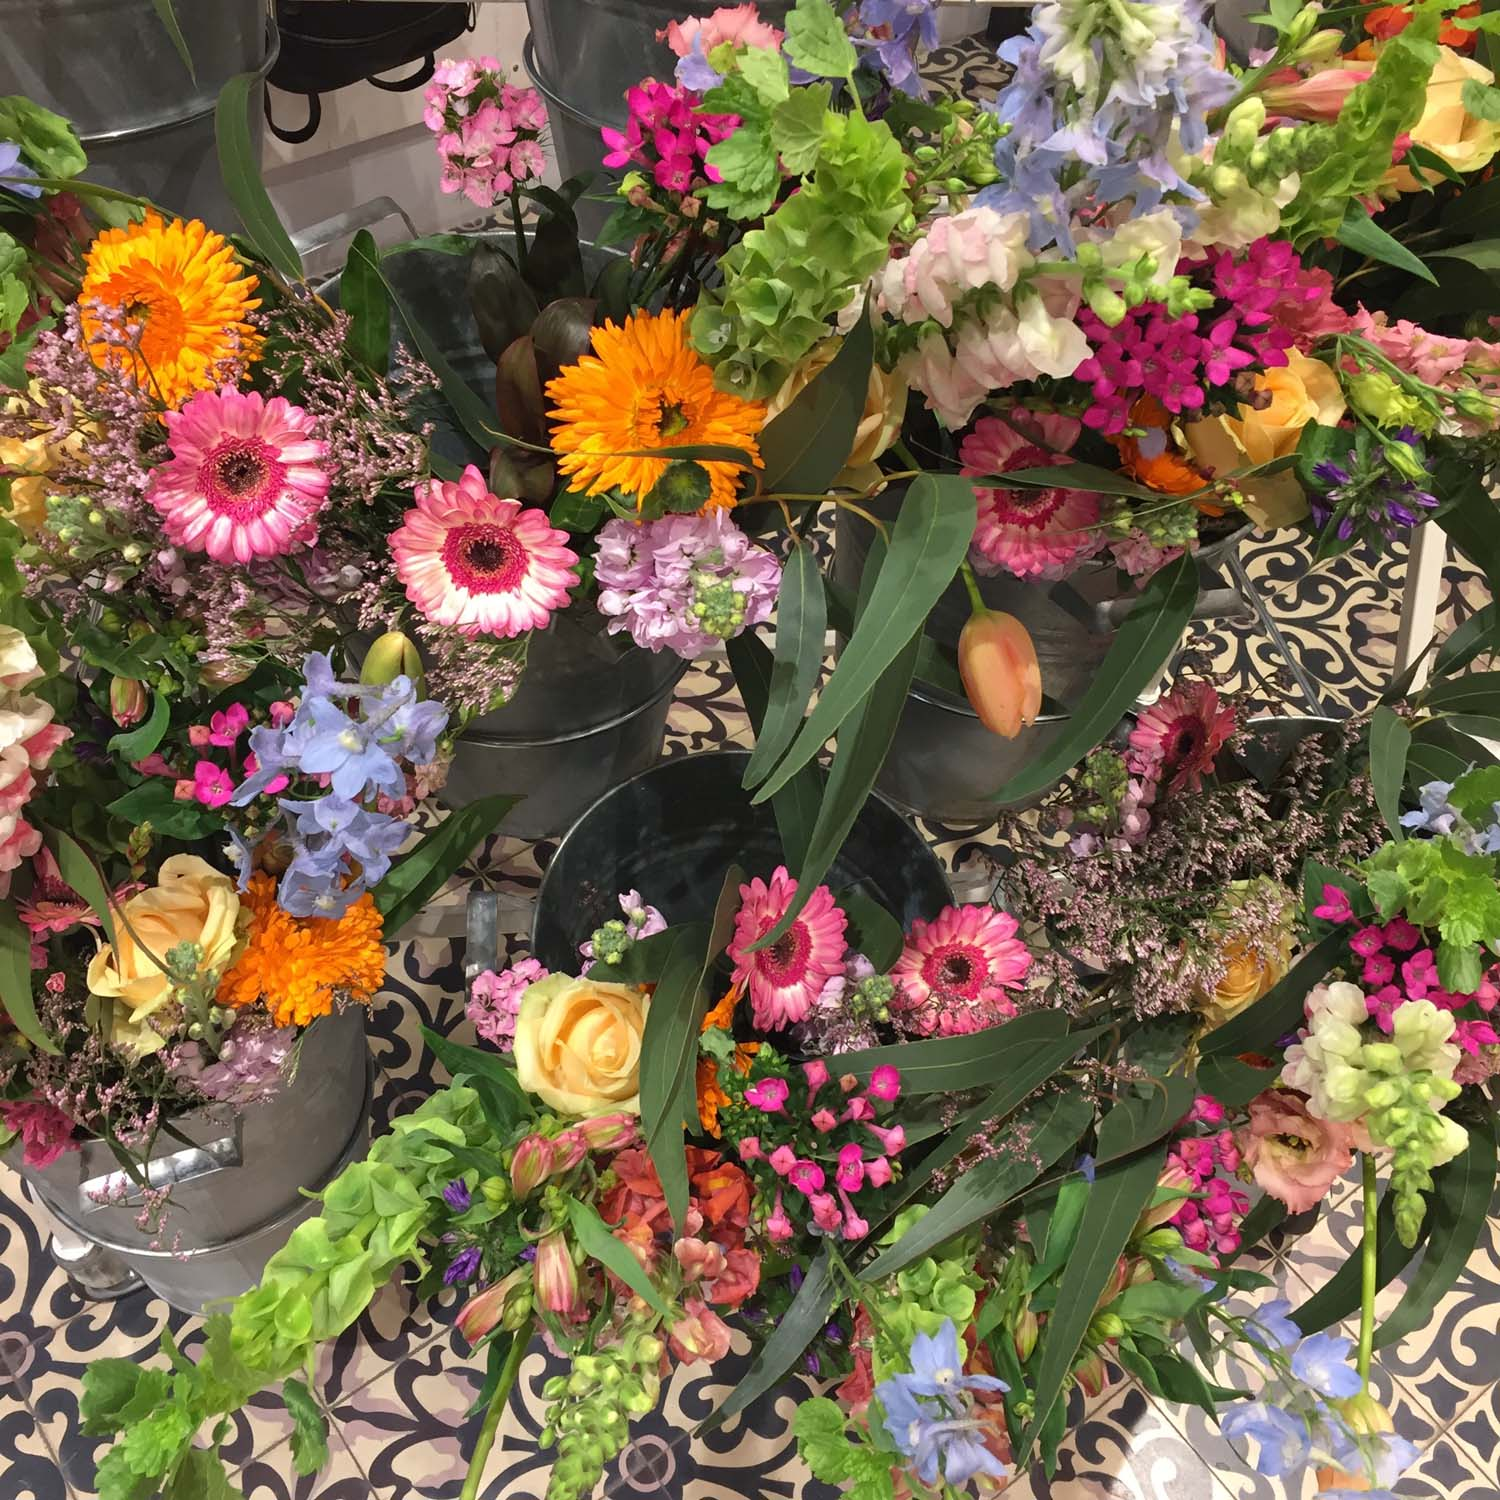 Flowers ready to be arranged at the workshop